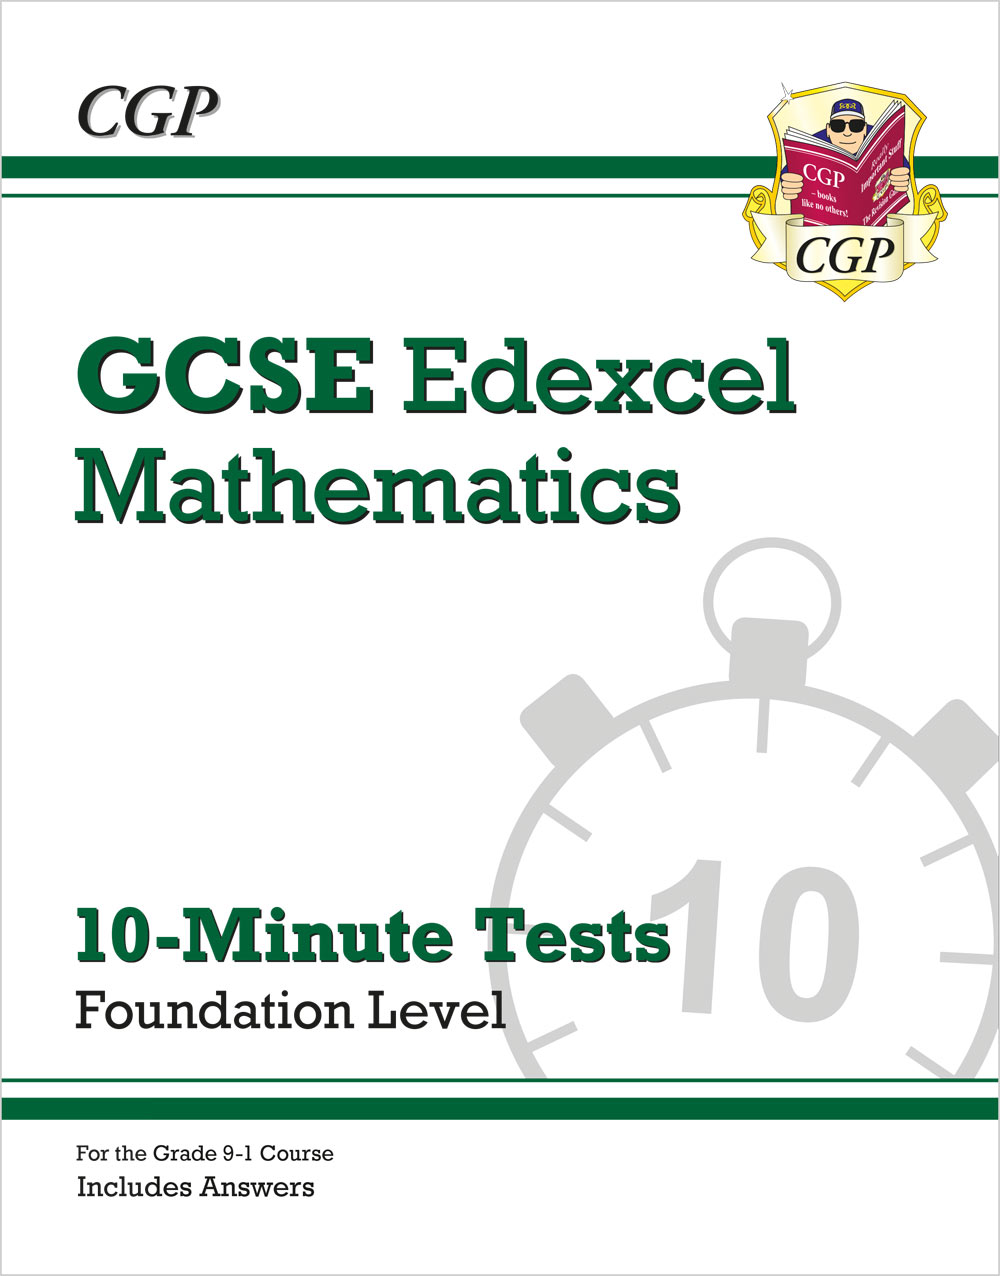 MXFXP41 - Grade 9-1 GCSE Maths Edexcel 10-Minute Tests - Foundation (includes Answers)